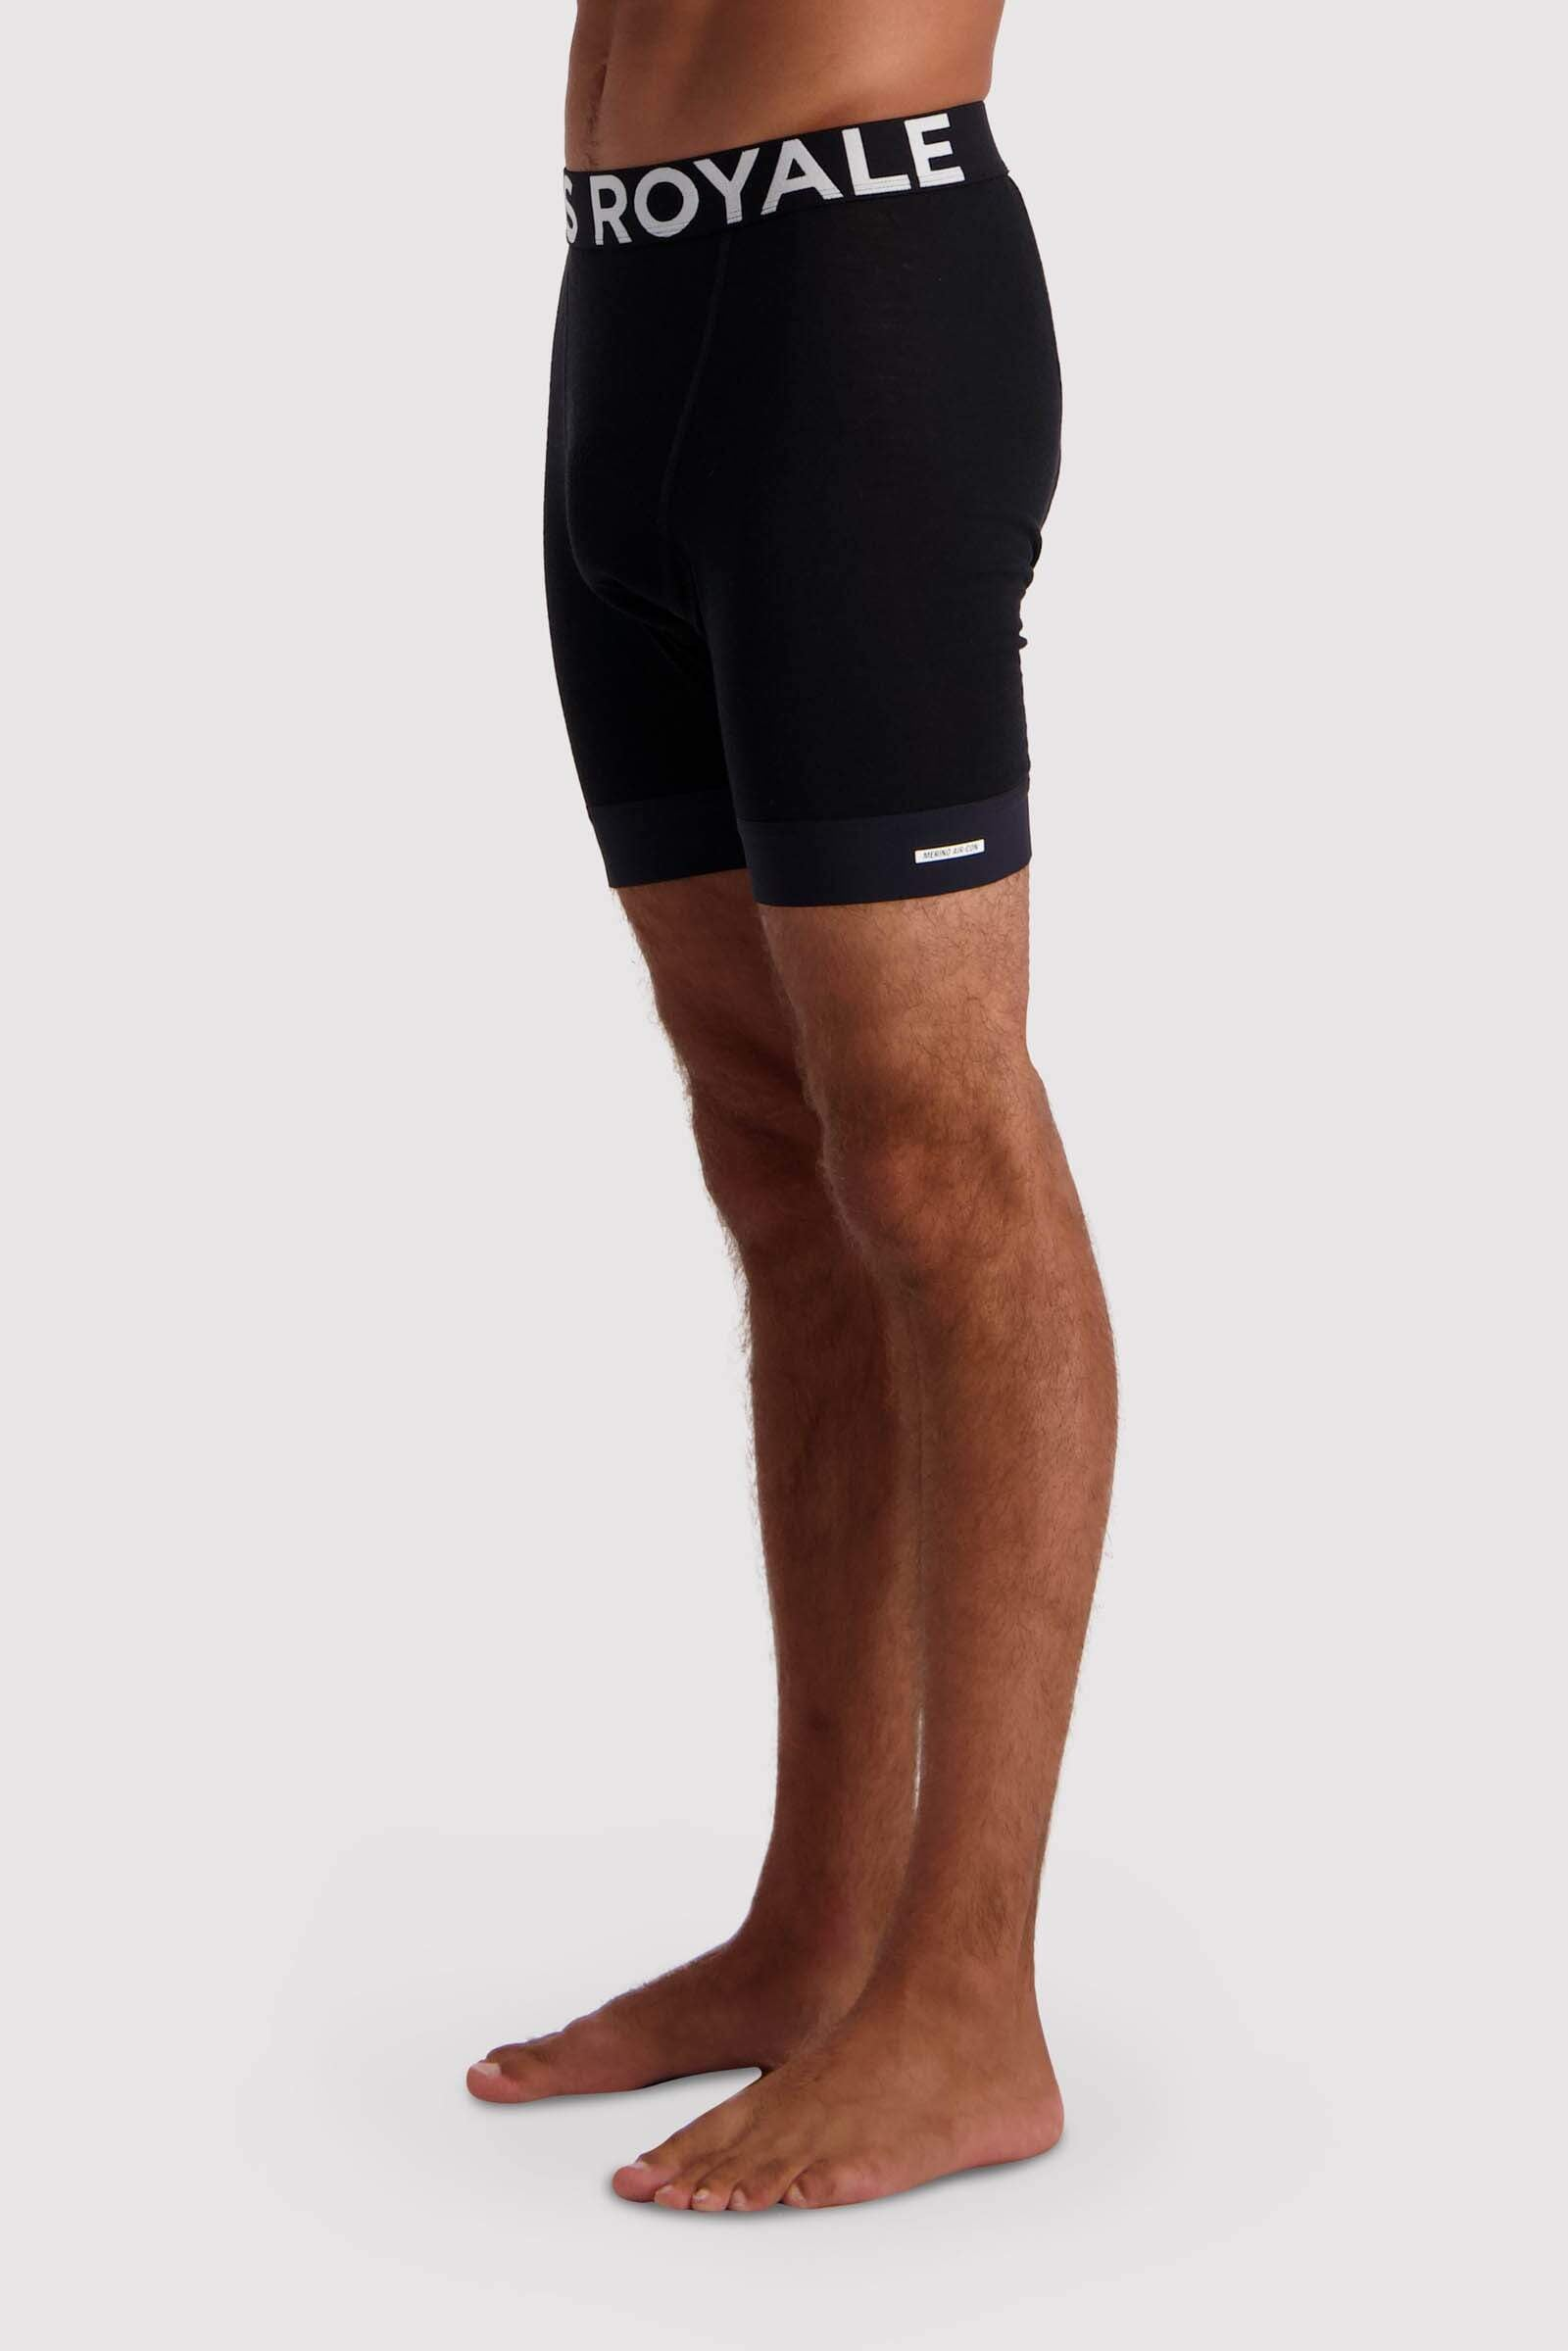 Enduro Bike Short Liner - Black